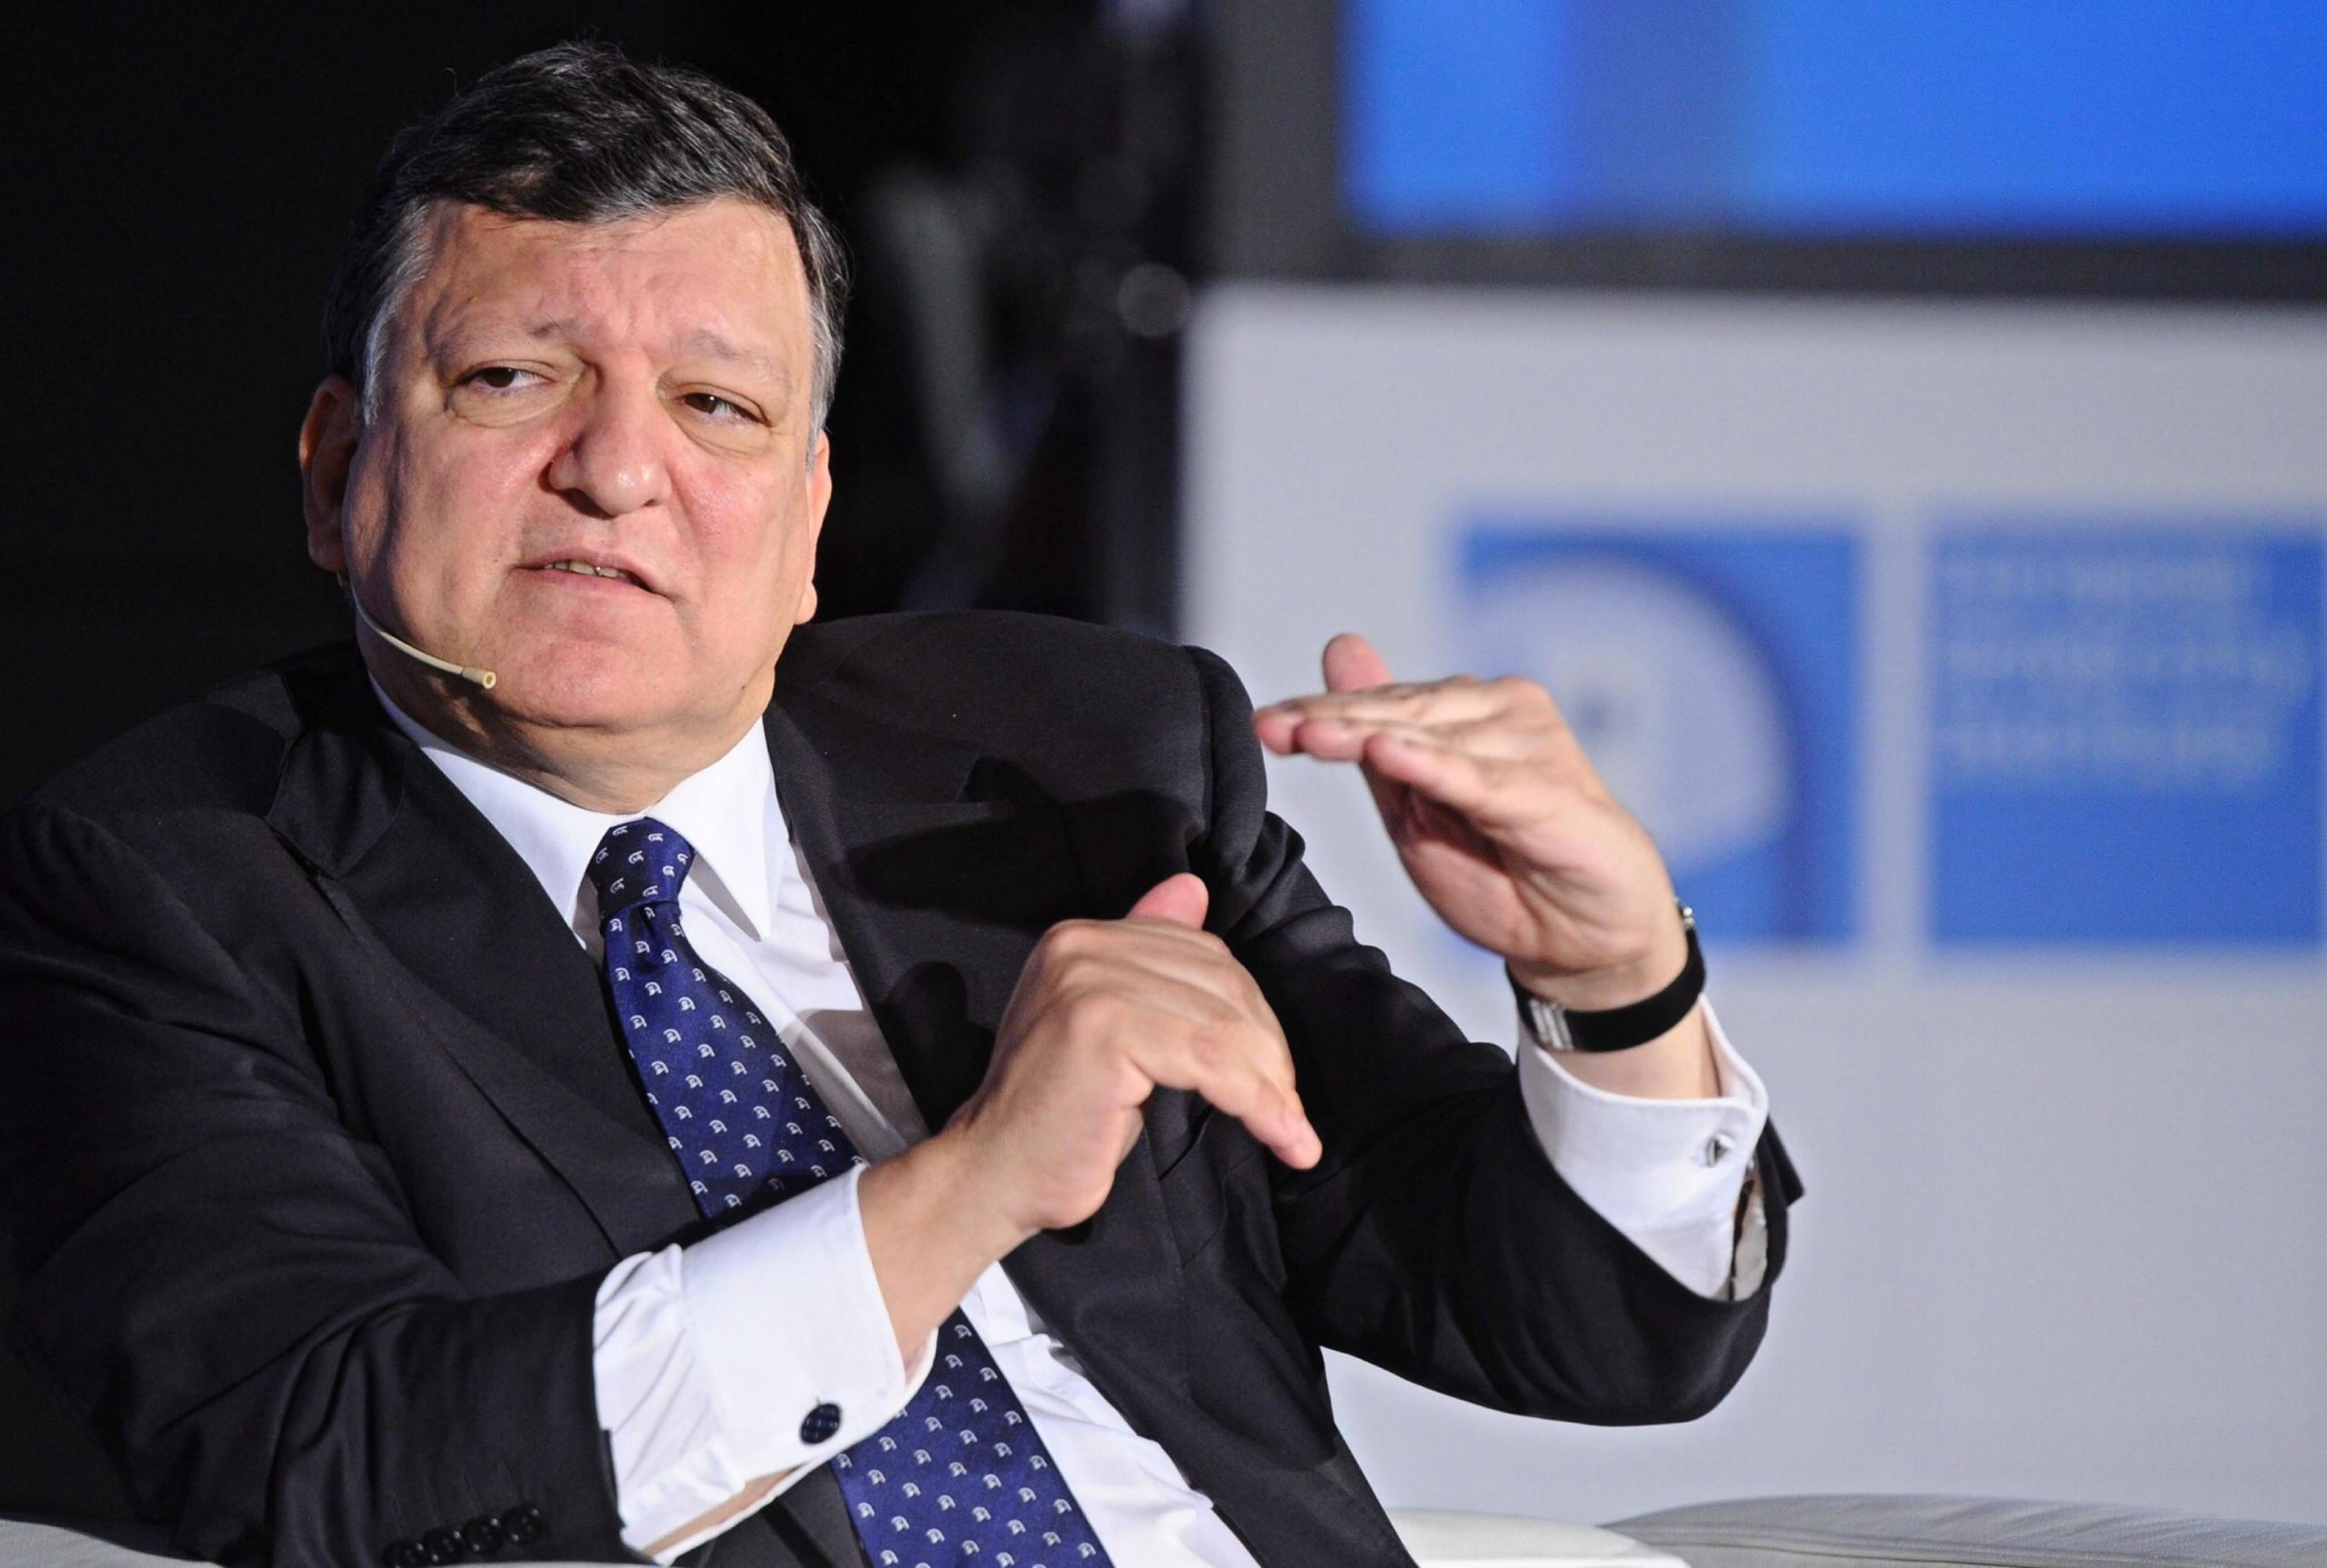 Former EC Pres Barroso: Hungary Important EU Member, but Gov't Must Comply with Rule of Law